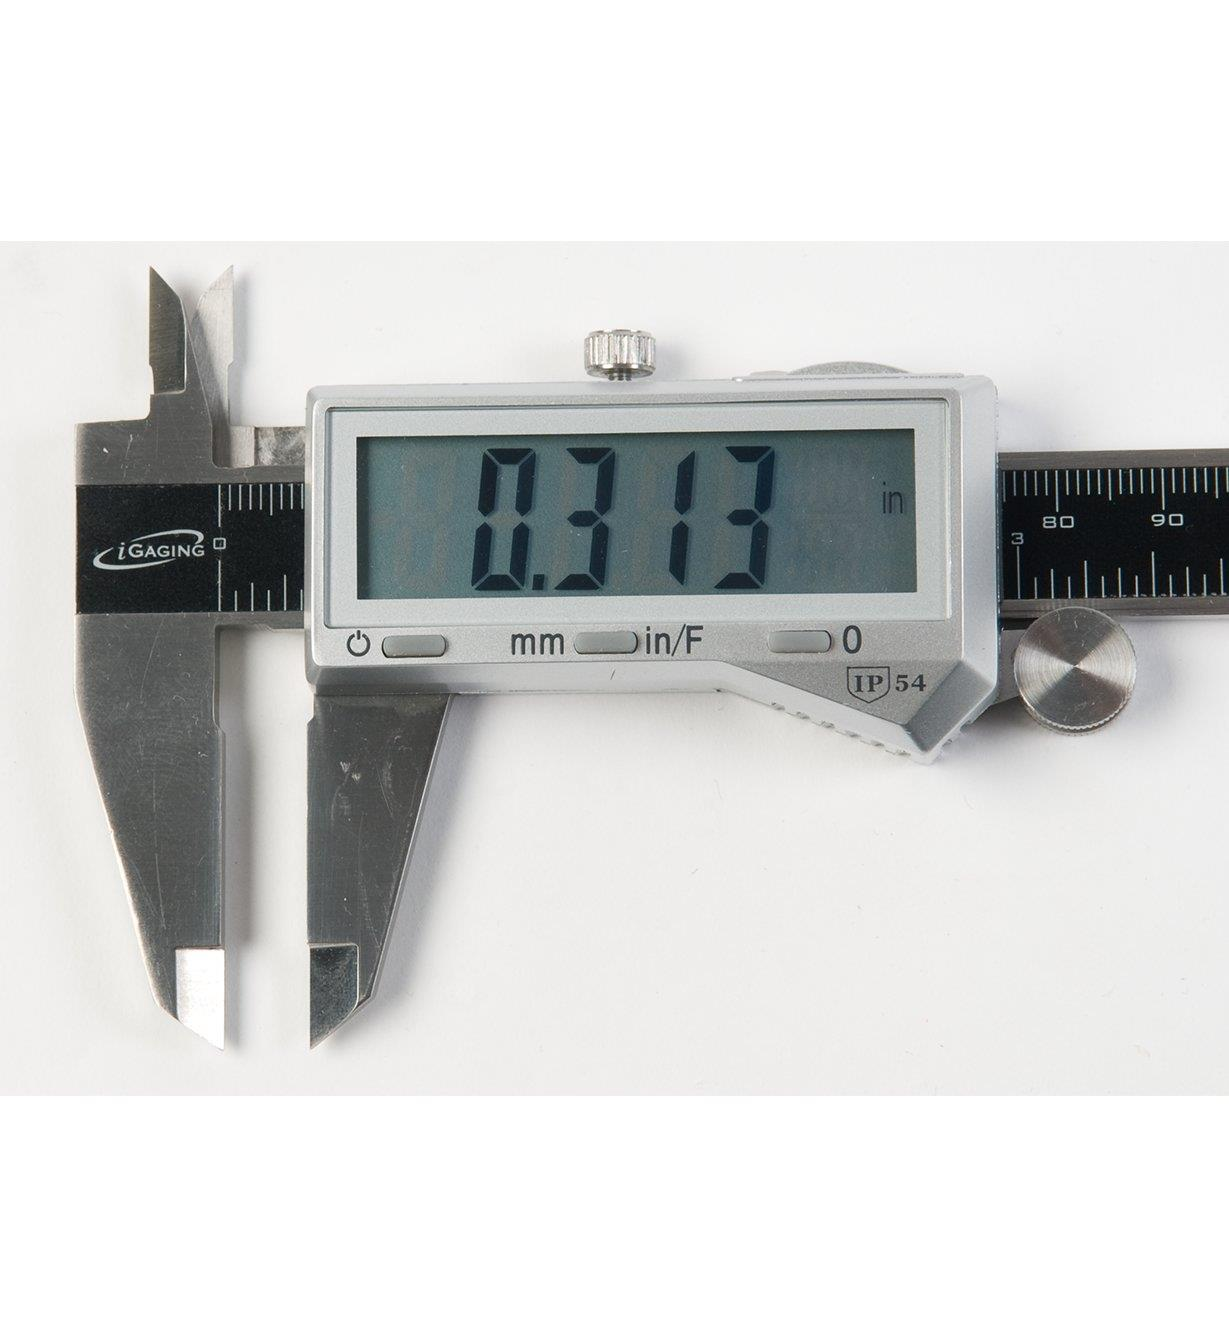 Close-up of caliper screen showing measurement in decimal inches